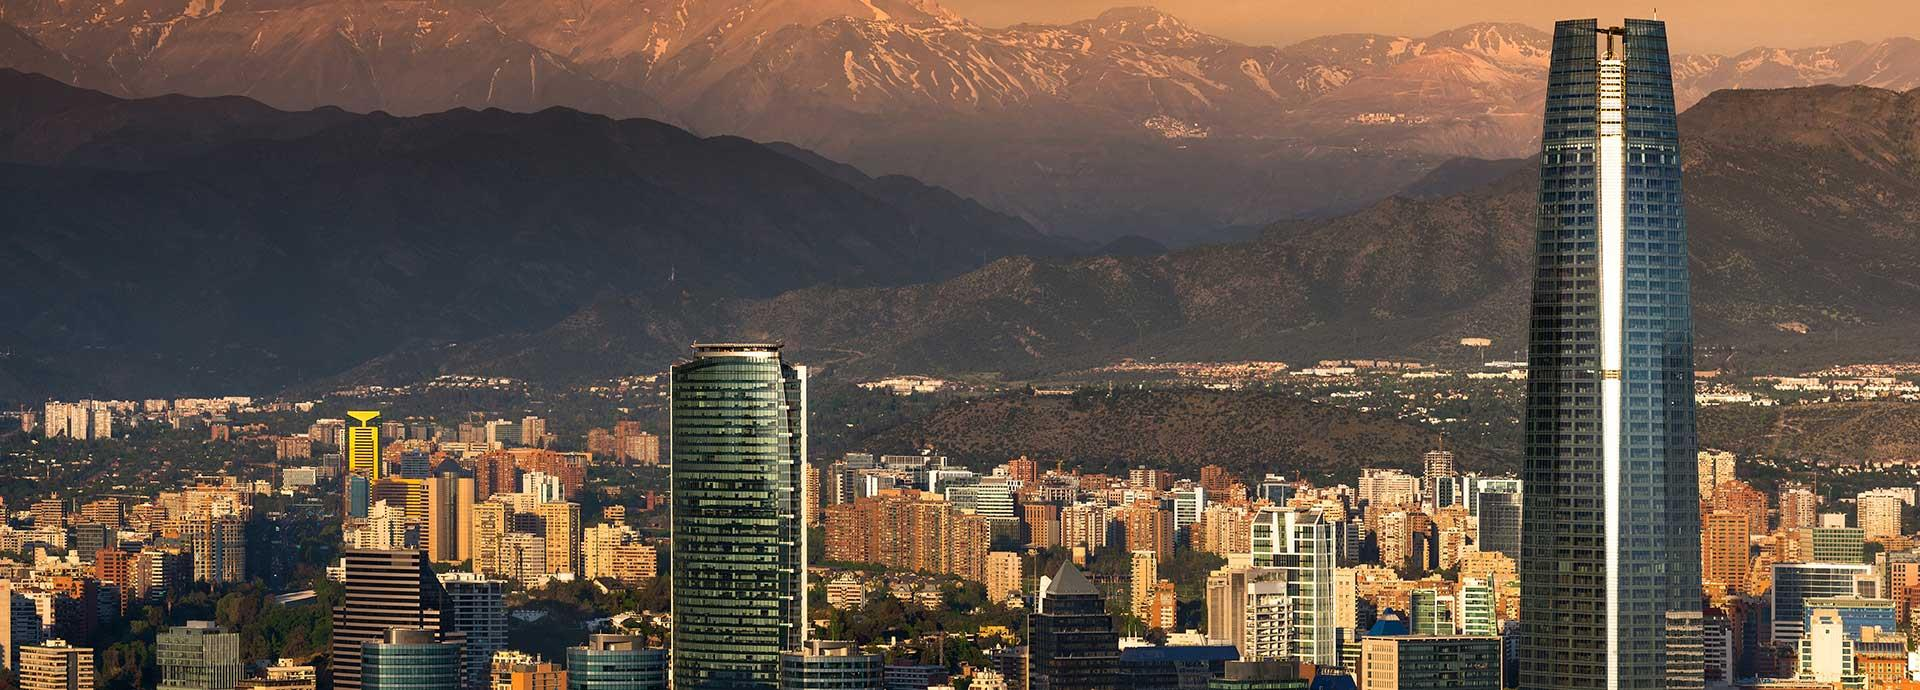 Chile pledges to go carbon neutral by 2050